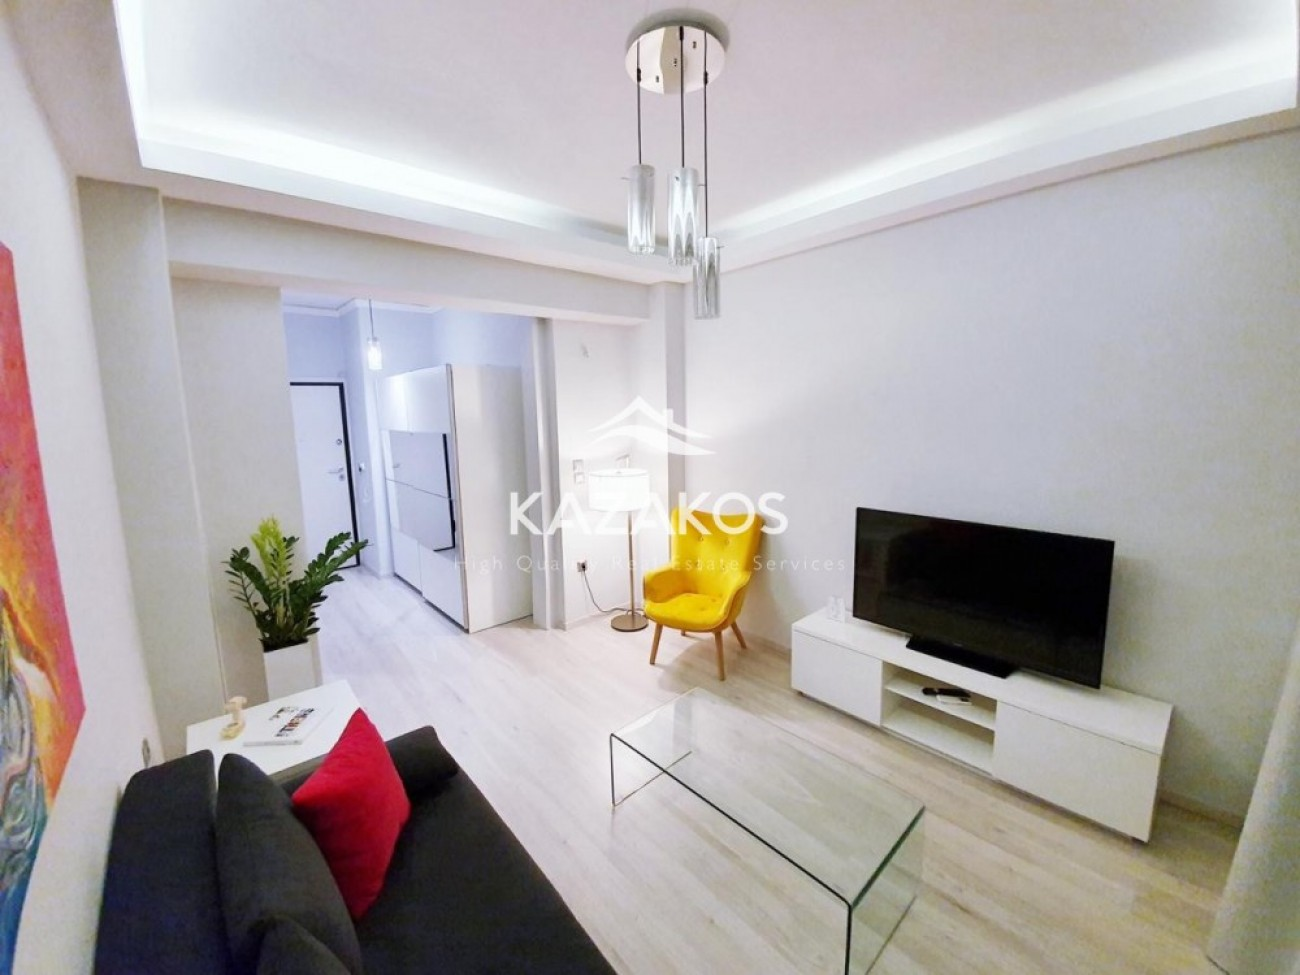 Apartment for Sale in Larissa Station, Athens City Center, Greece